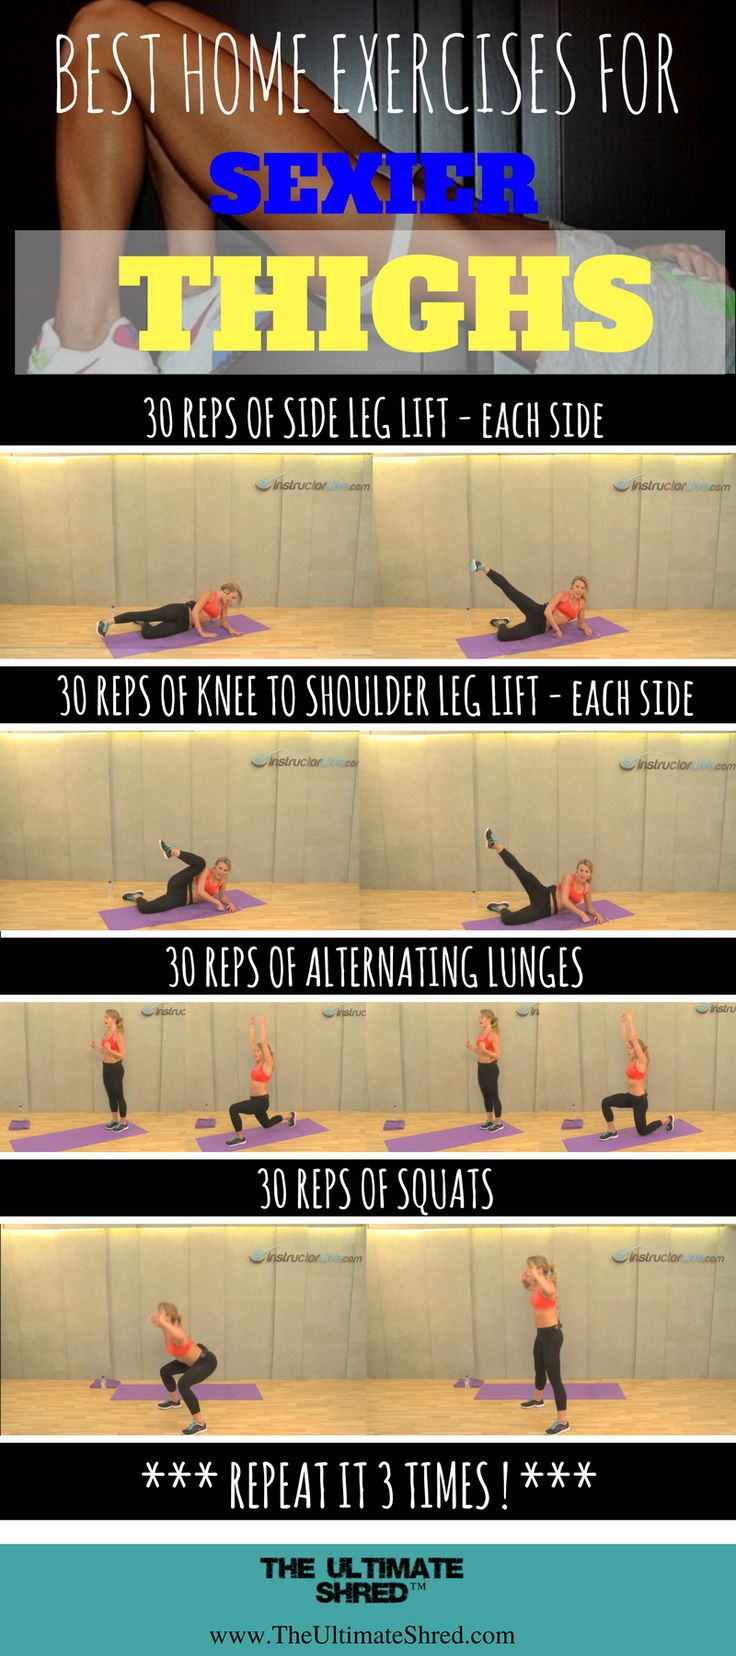 Make your way up to the sexier thighs by follow these simple yet effictive exercises!  Get more free workout here with us!